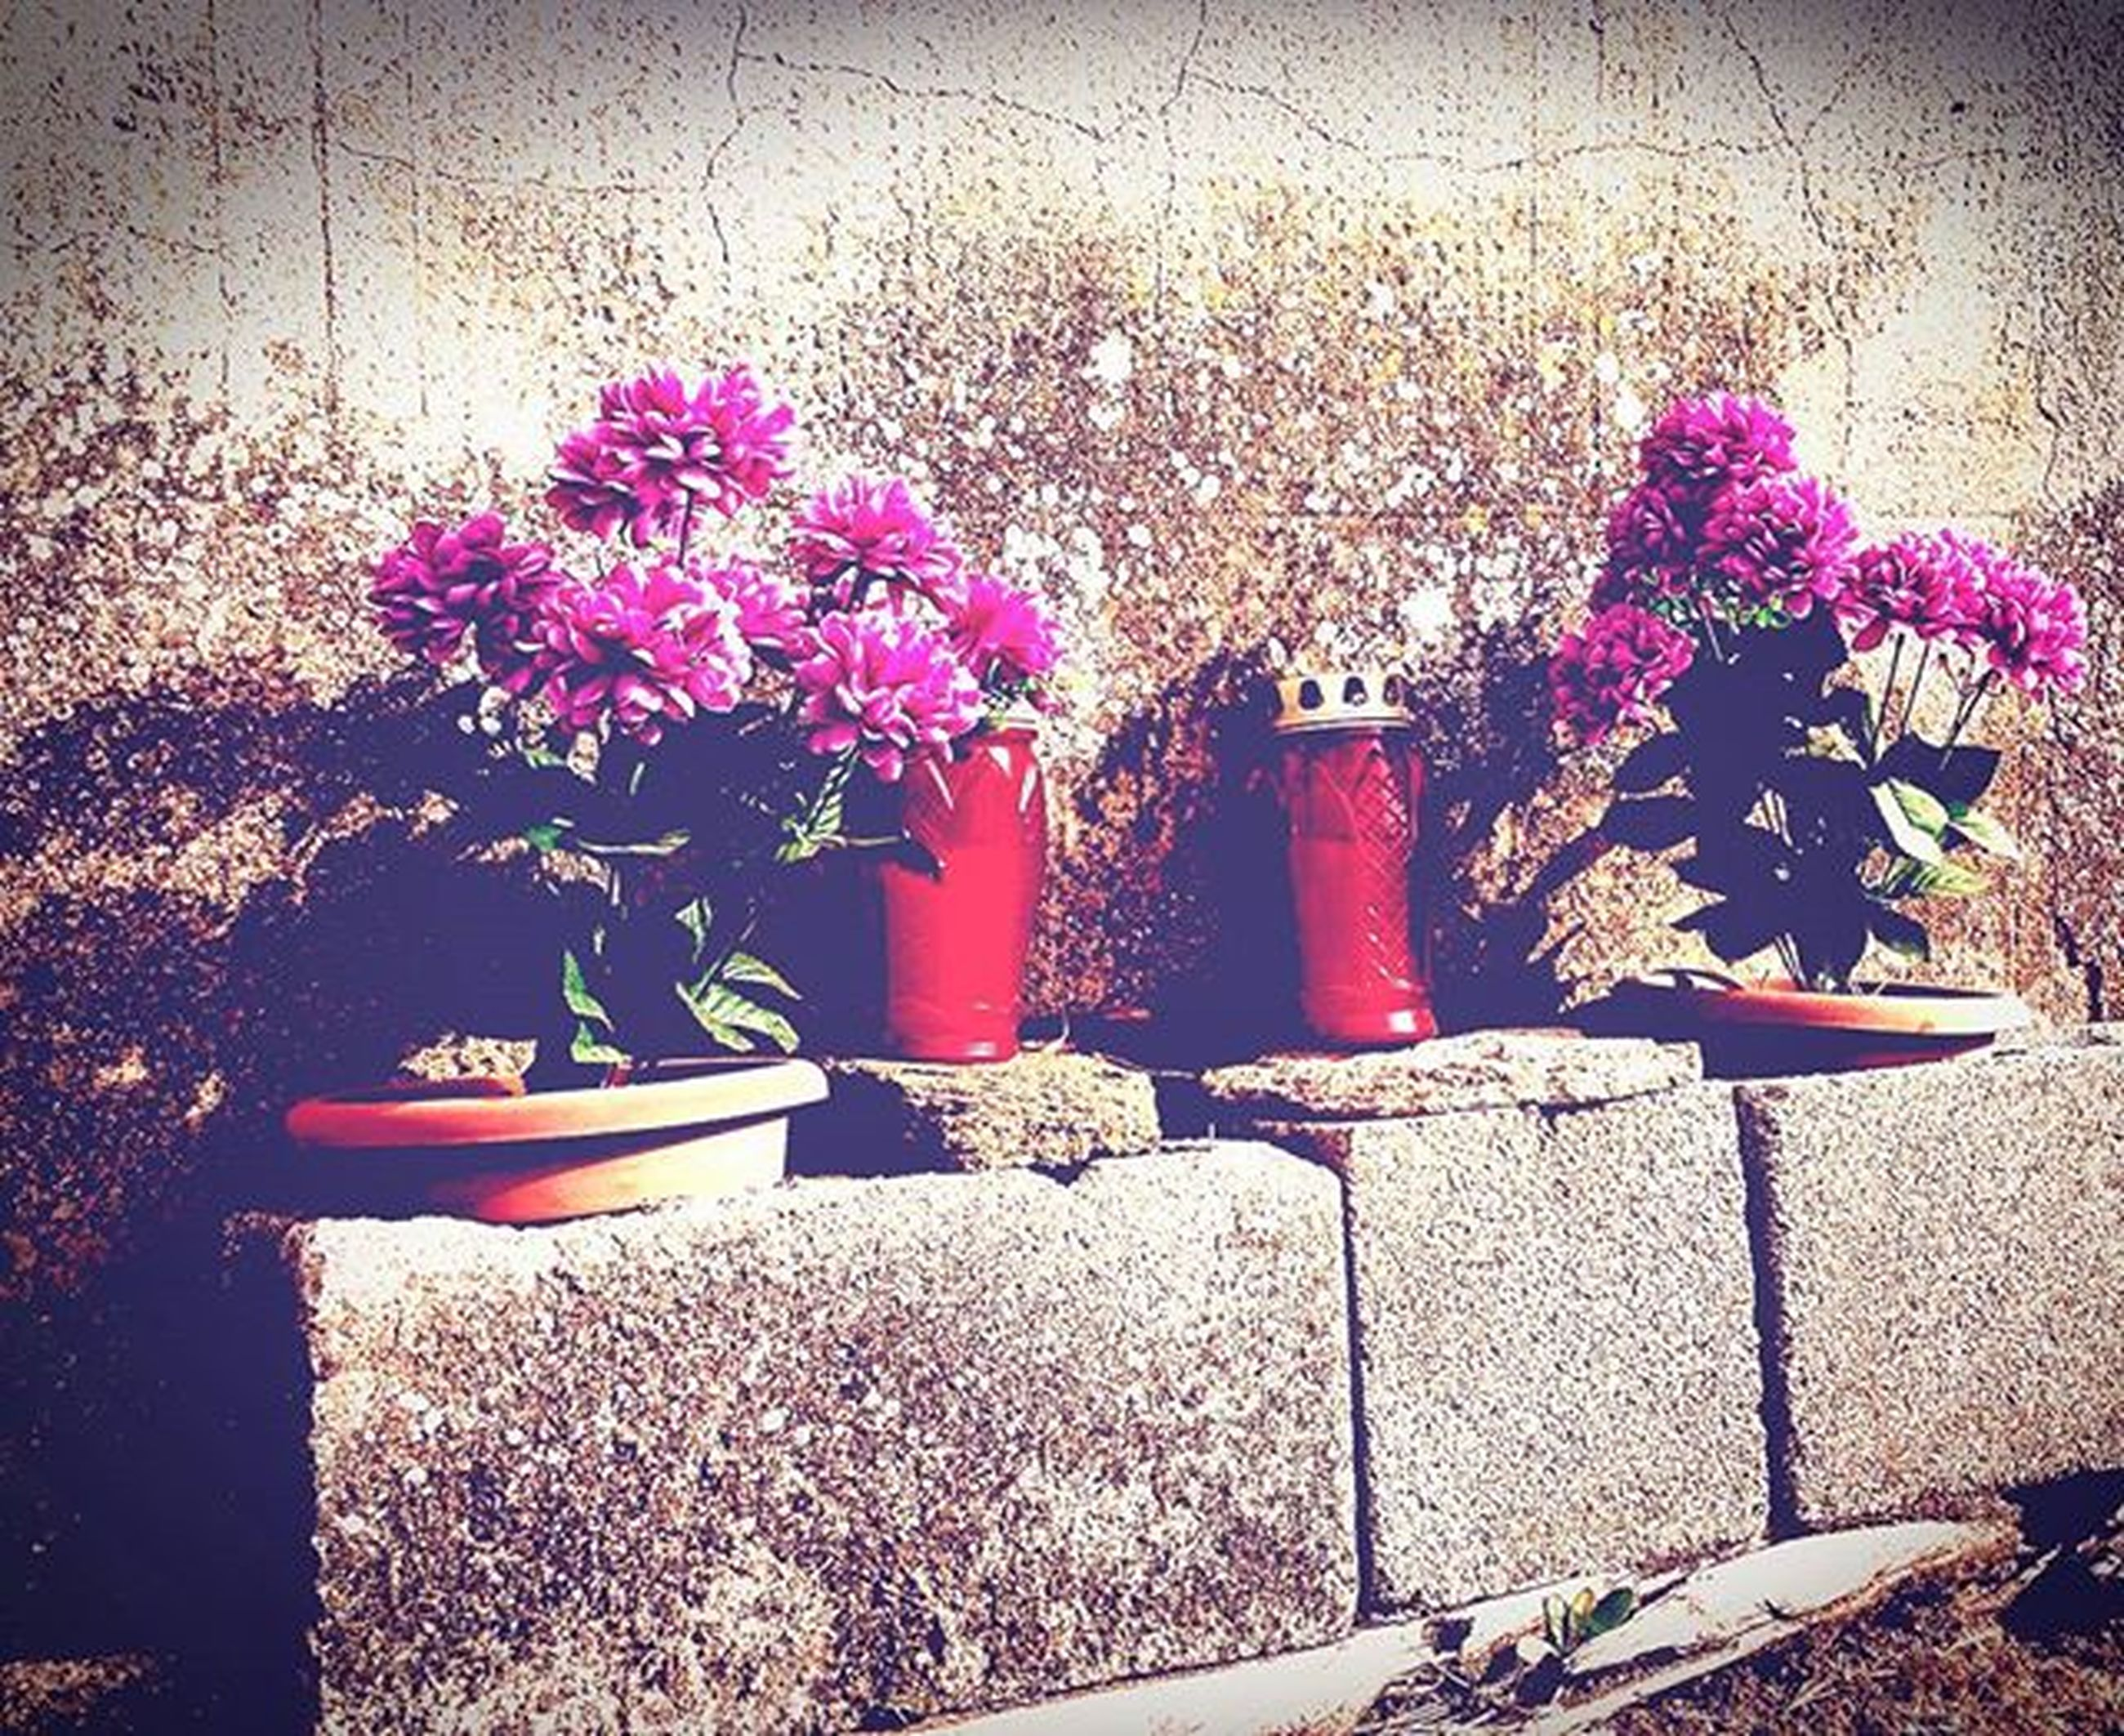 flower, potted plant, plant, growth, wall - building feature, fragility, flower pot, vase, freshness, petal, nature, pink color, wall, indoors, table, built structure, no people, beauty in nature, day, sunlight